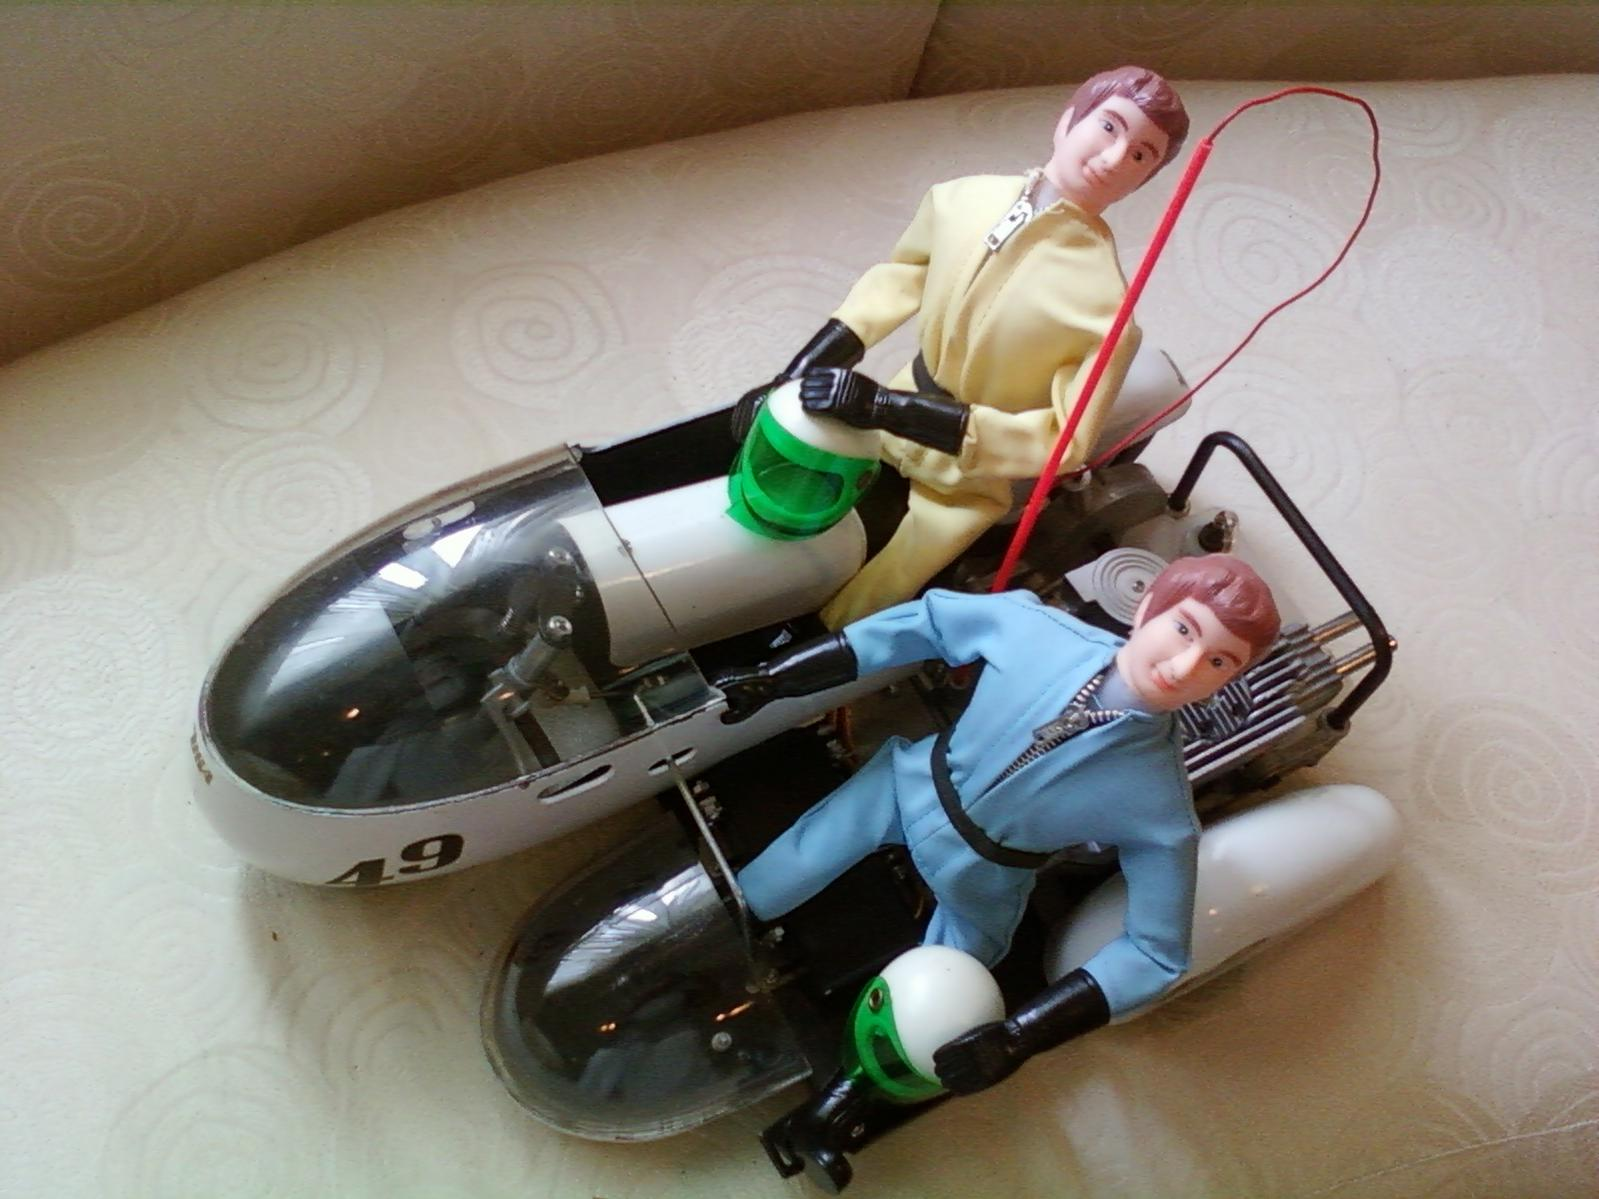 Name: 09100927.jpg Views: 114 Size: 164.1 KB Description: 1973 Kyosho Racing Cycle with Sidecar 750